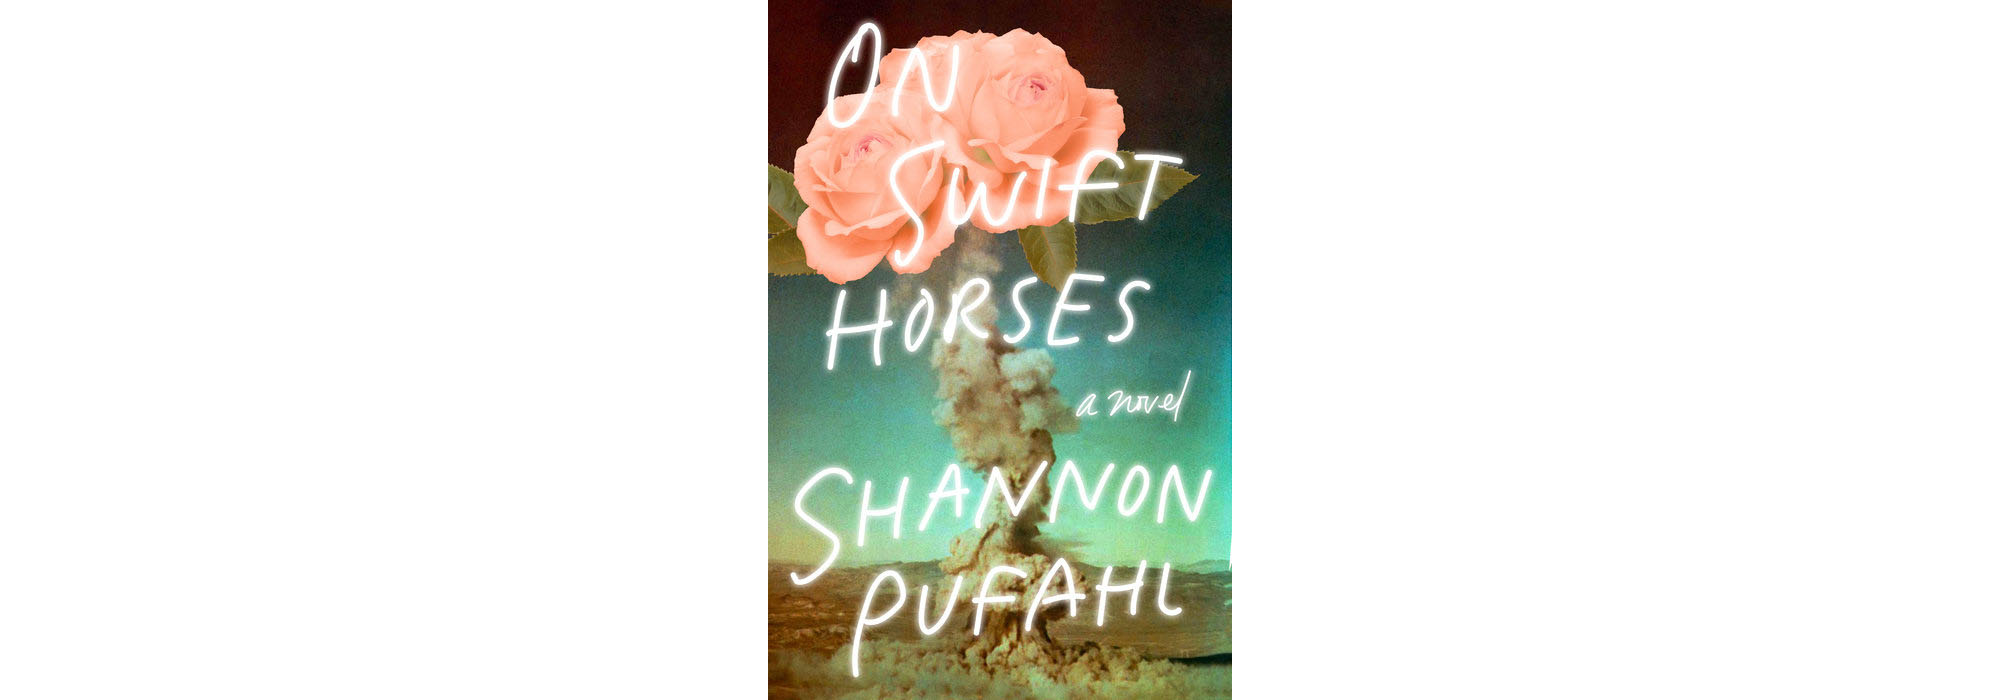 Cover of On Swift Horses, by Shannon Pufahl